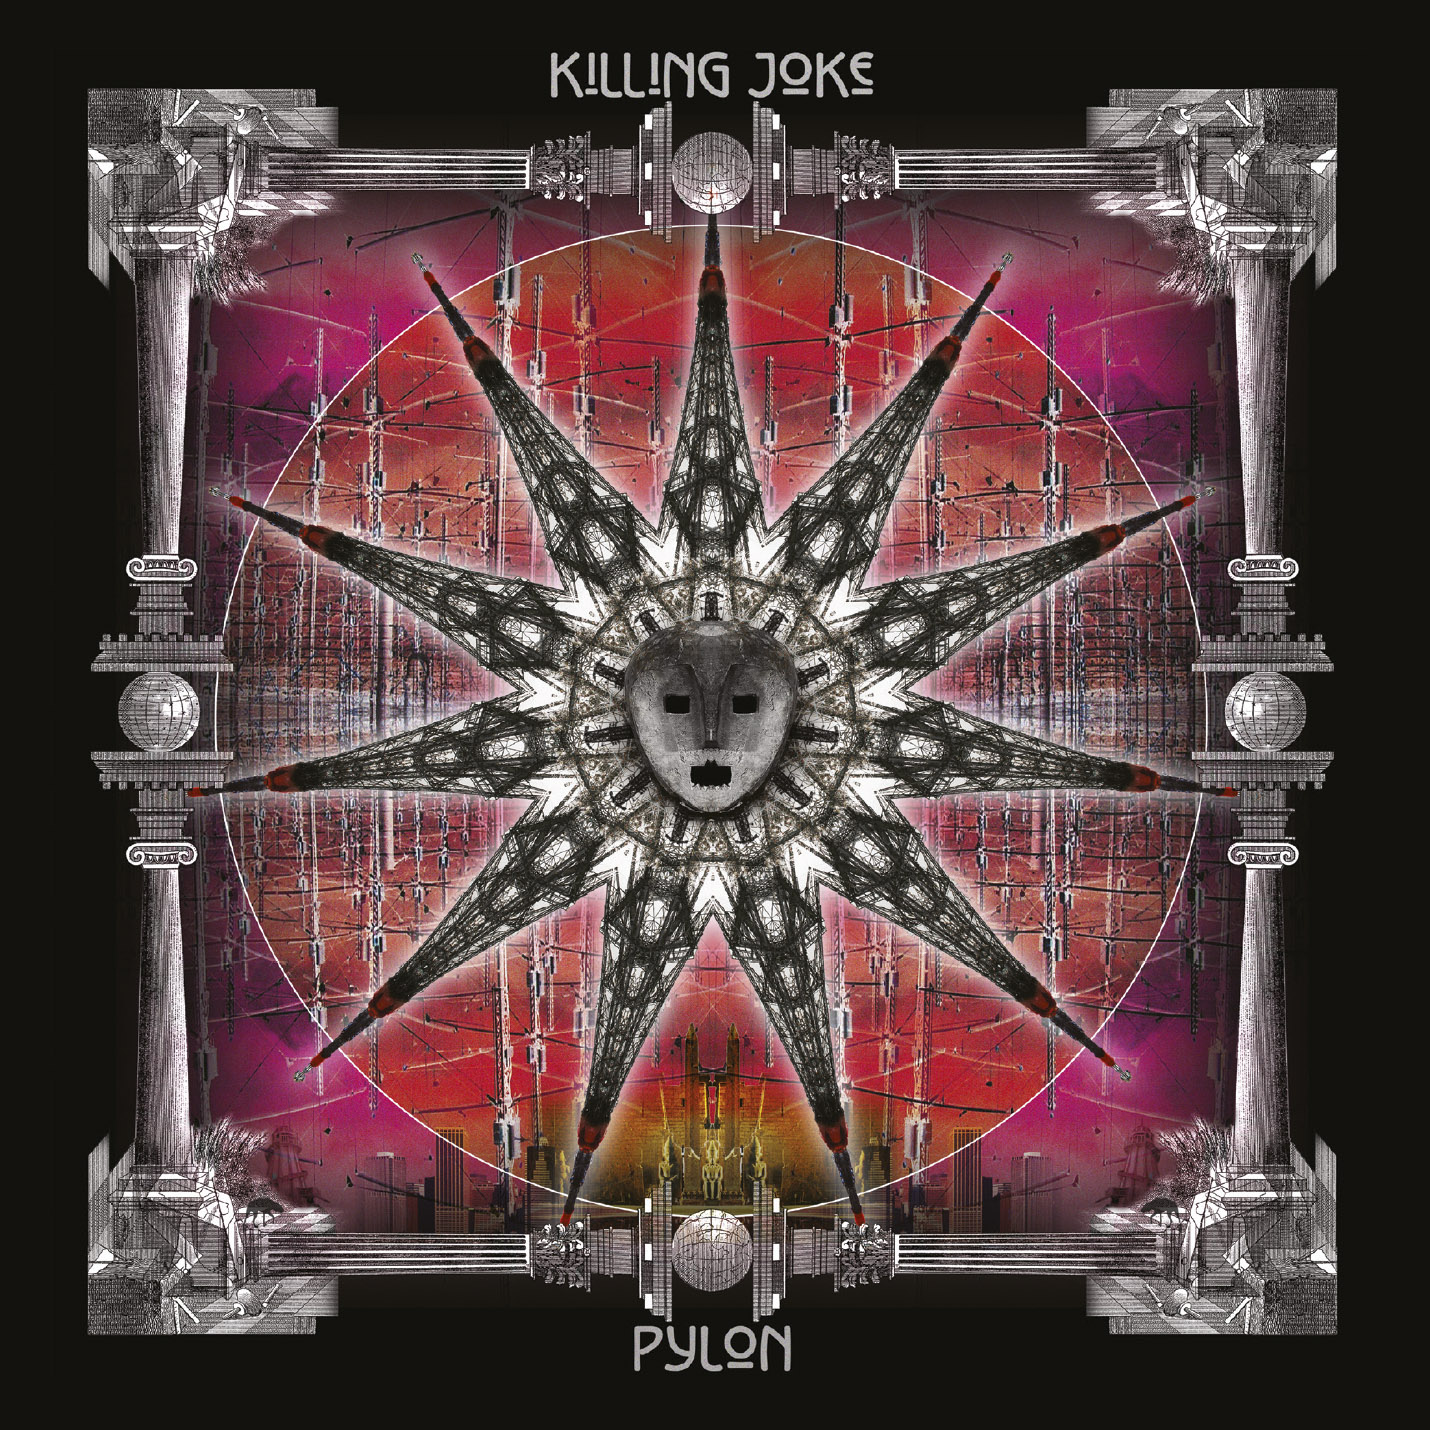 Killing Joke – Pylon Review